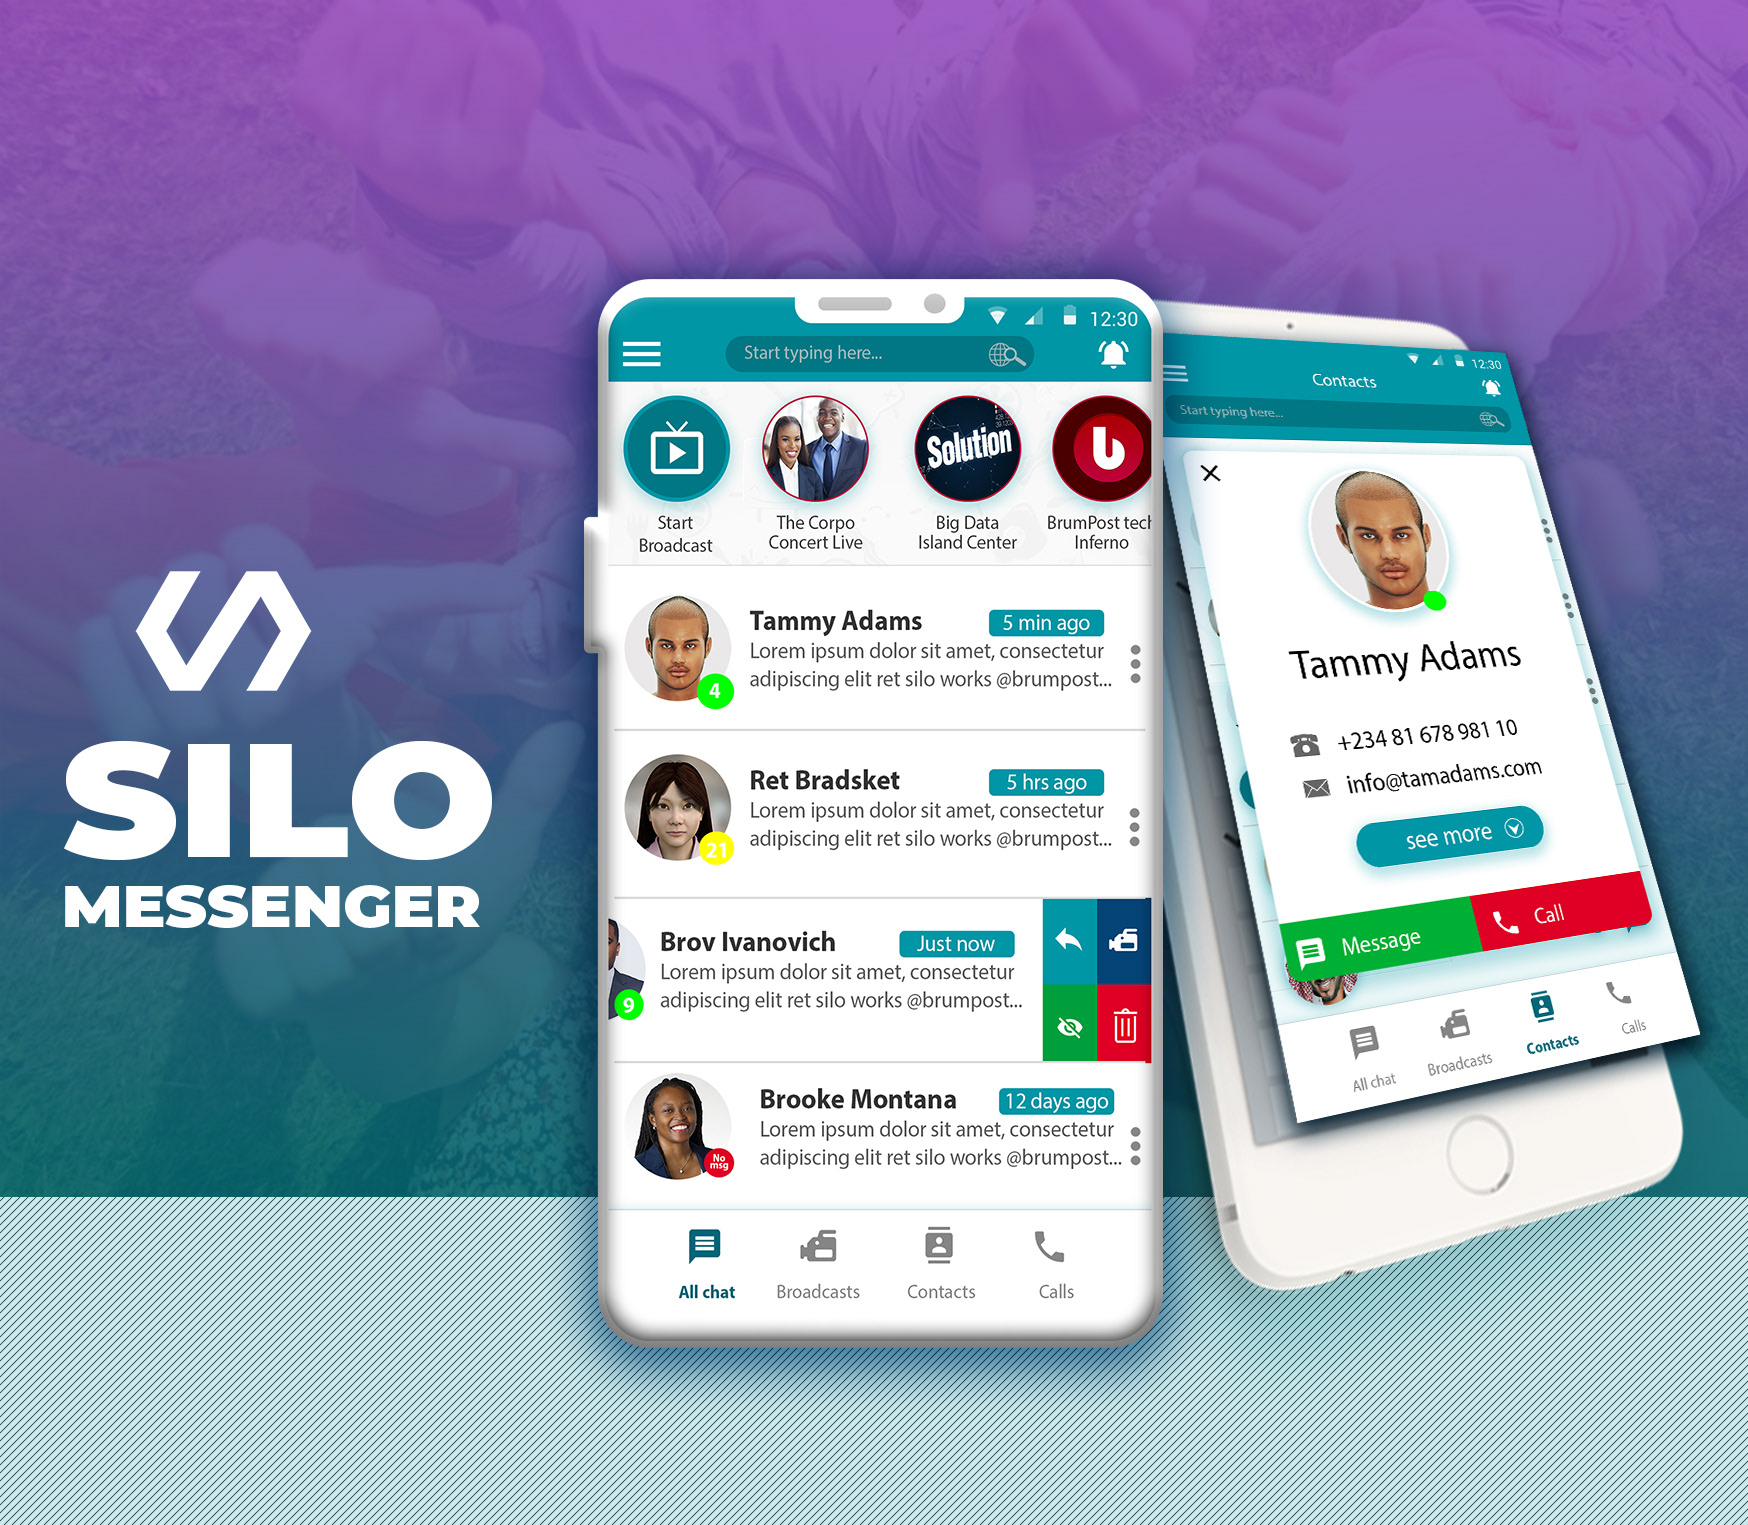 Silo Messenger - Free instant messenger chat application UI template